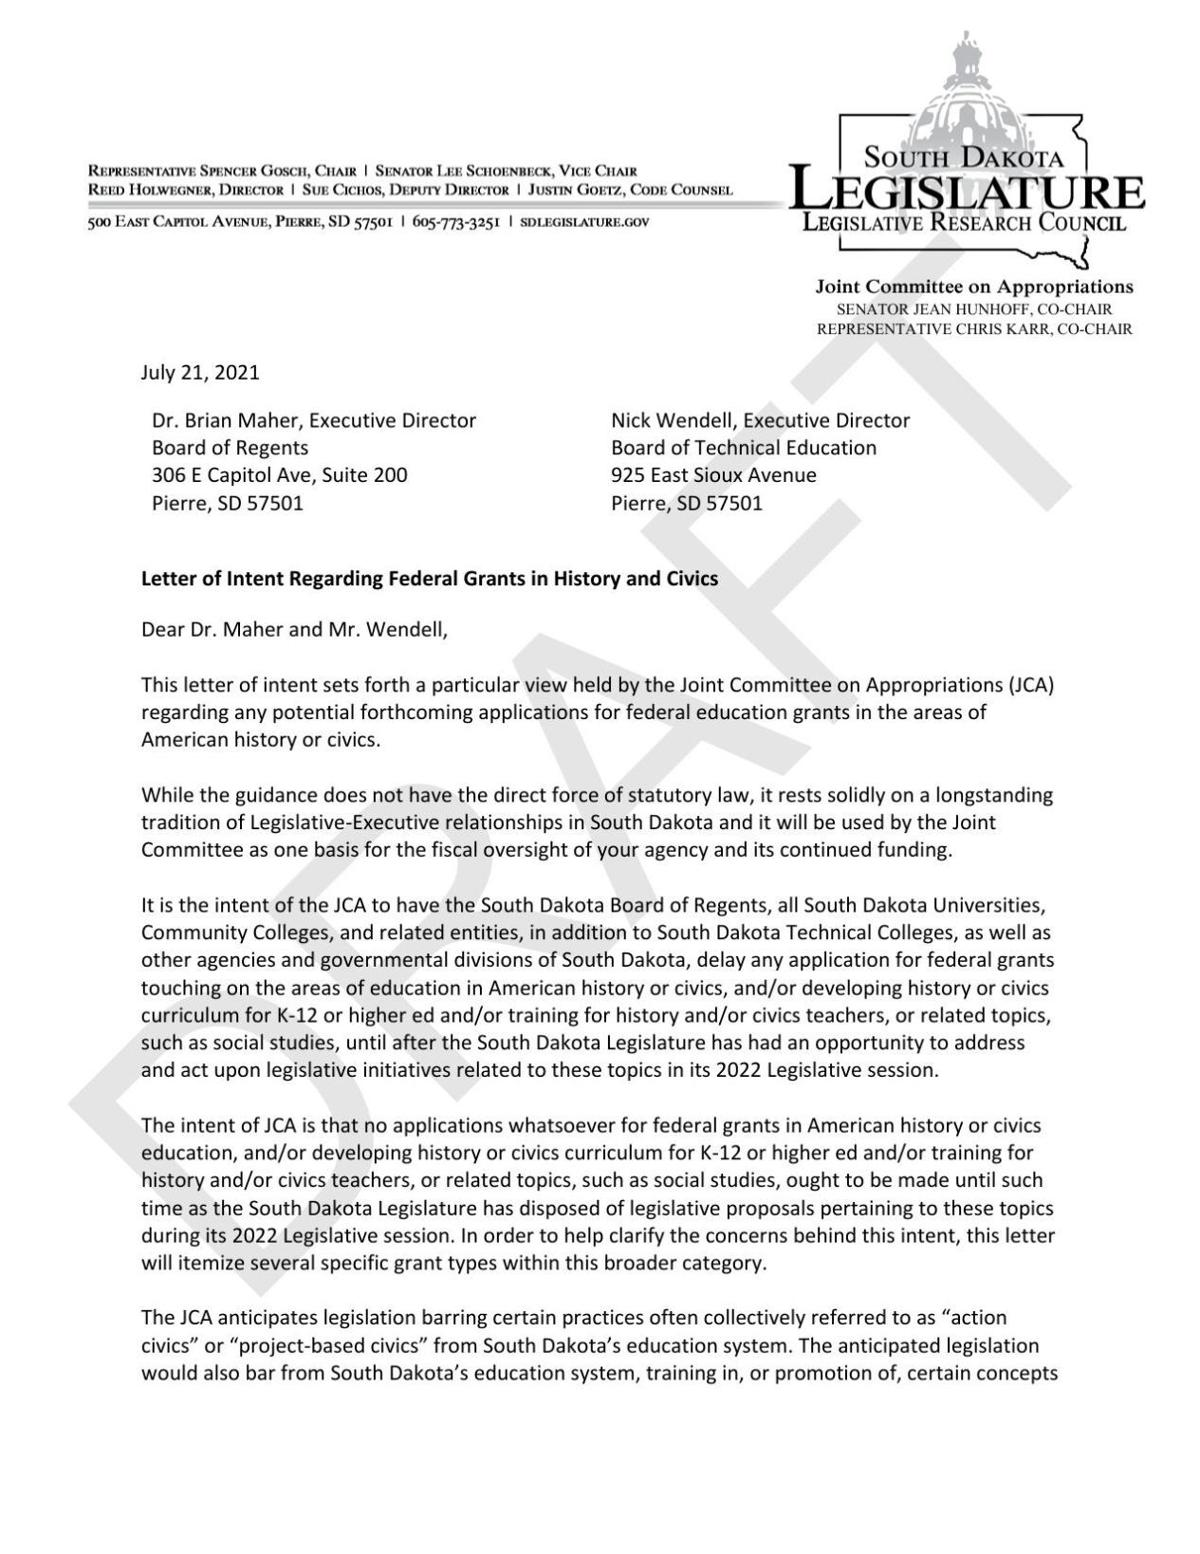 Letter of Intent Regard Federal Grants in History and Civics